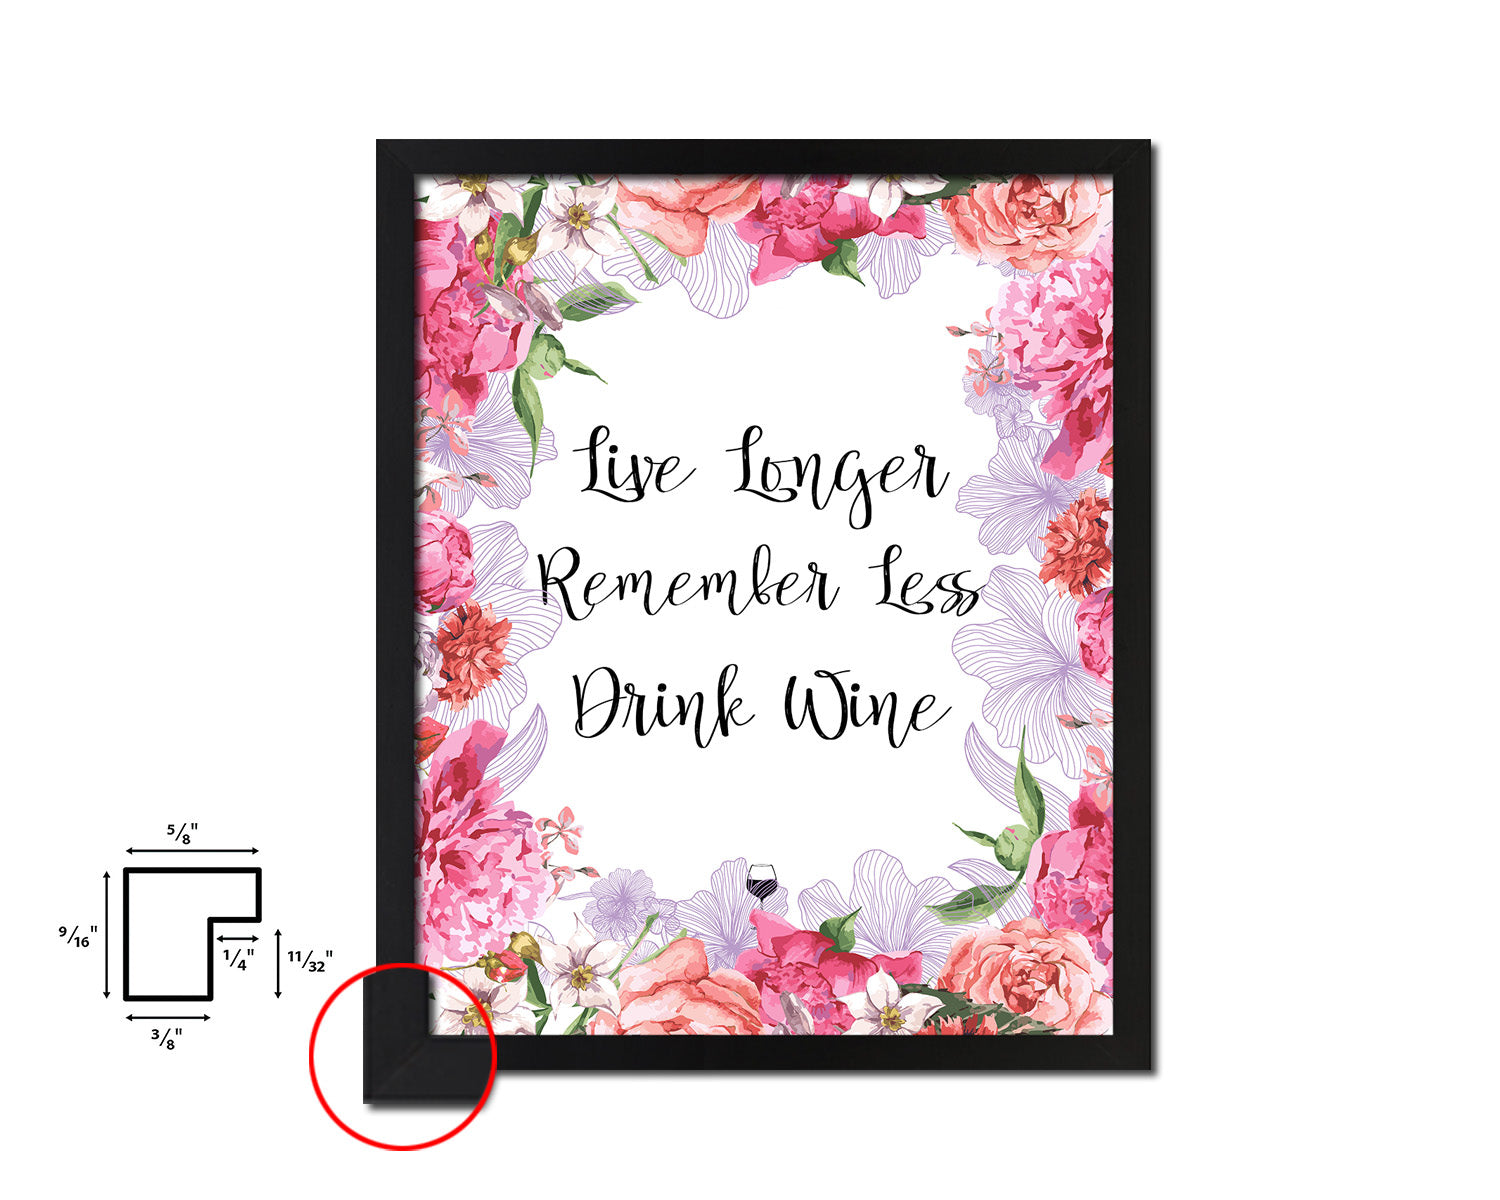 Live longer remember less drink wine Framed Artwork Print Wall Decor Art Gifts